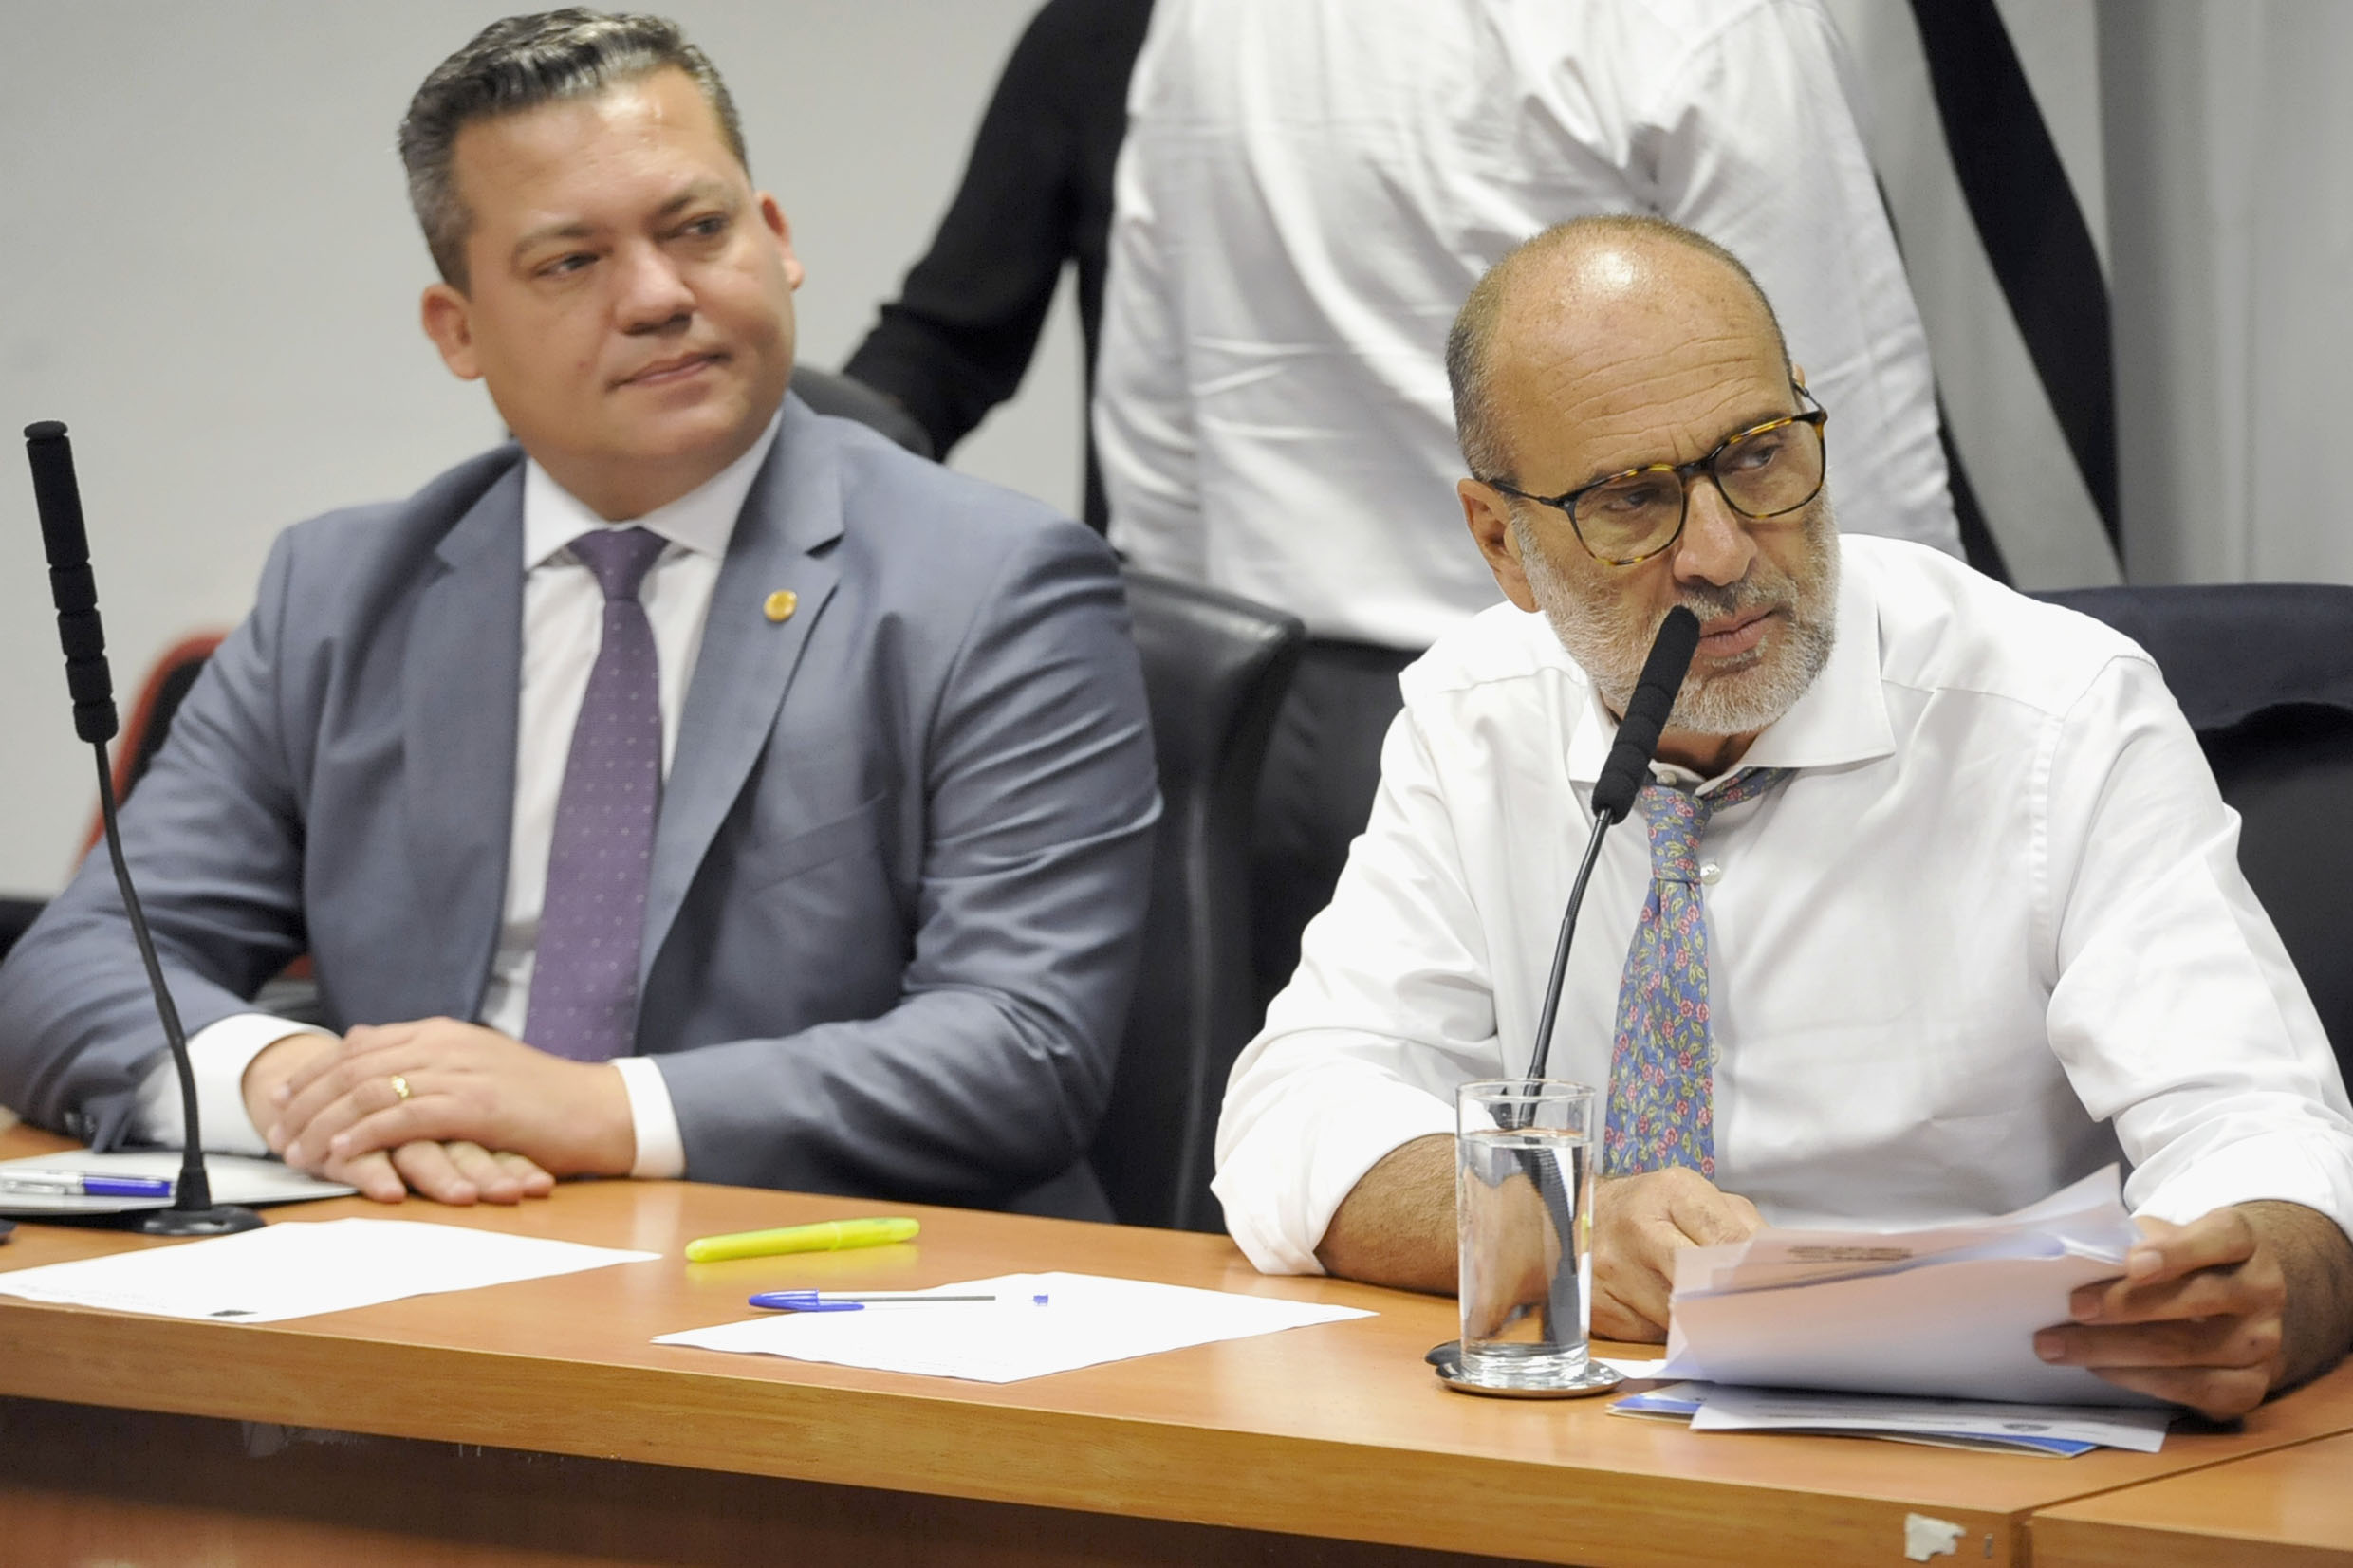 Paulo Correa Jr e Roberto Tripoli<a style='float:right' href='https://www3.al.sp.gov.br/repositorio/noticia/N-02-2019/fg230585.jpg' target=_blank><img src='/_img/material-file-download-white.png' width='14px' alt='Clique para baixar a imagem'></a>